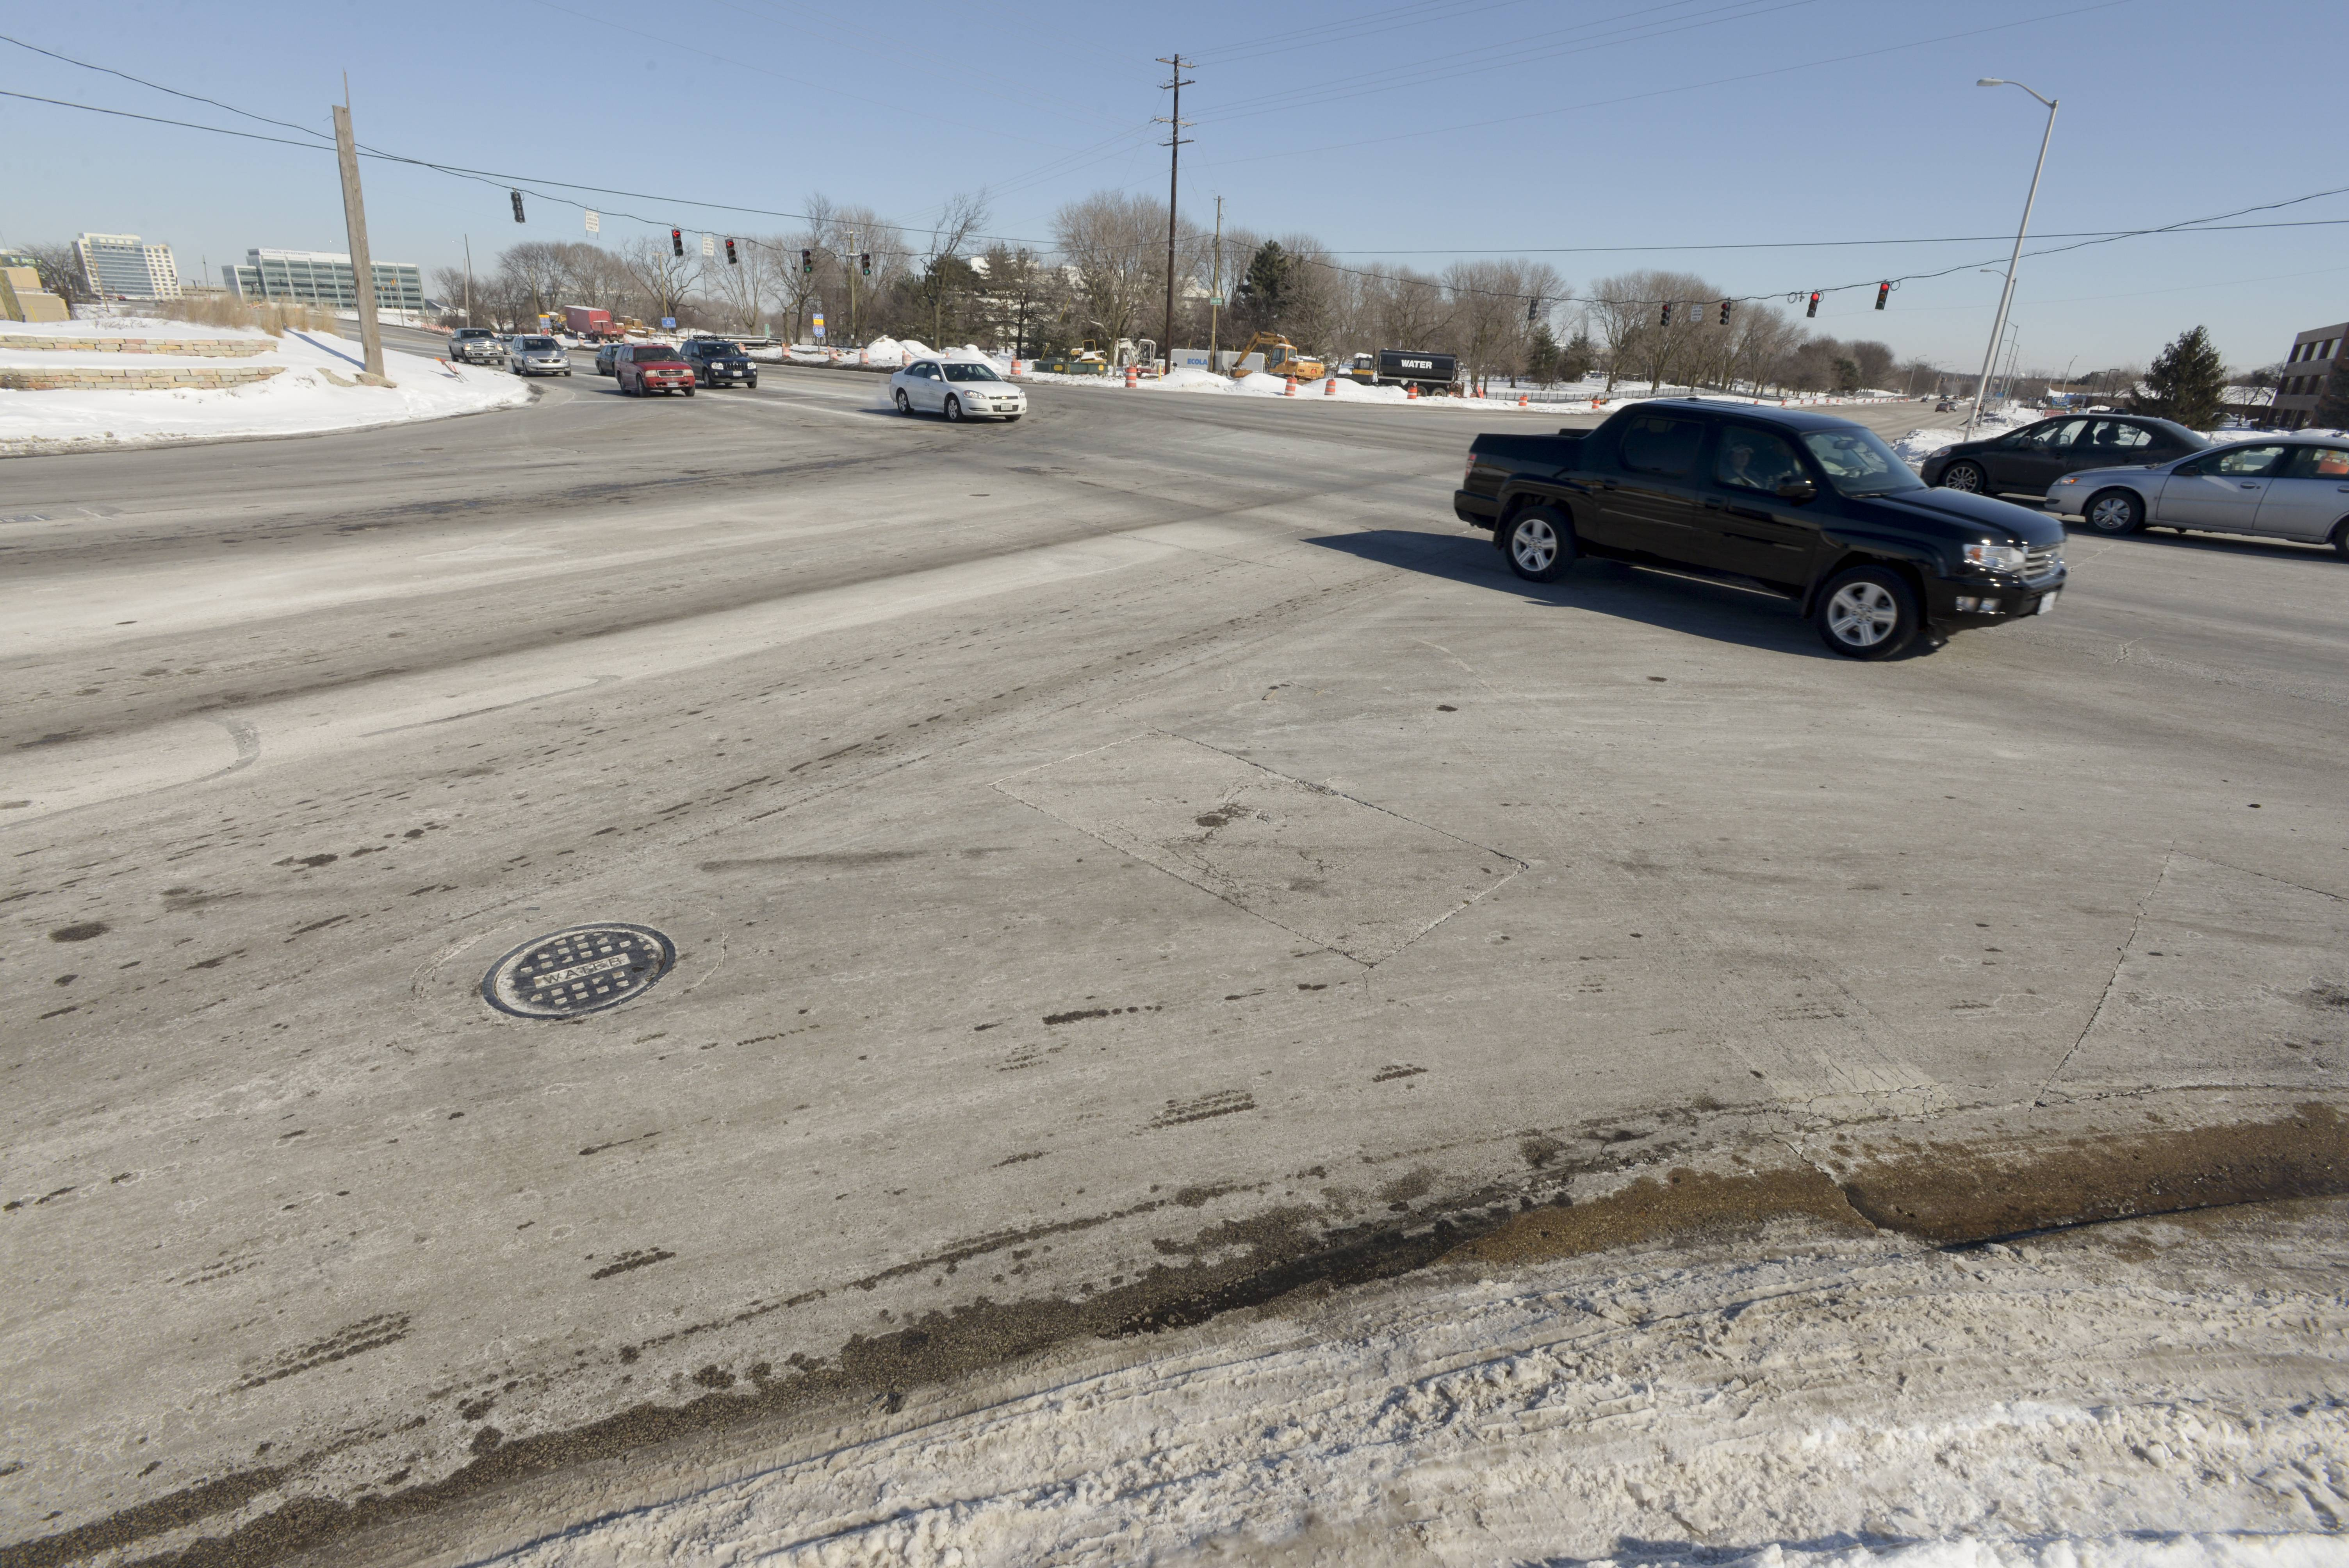 The Naperville intersection of Route 59 and Diehl Road, which has been under construction since August, saw 58 accidents in 2013.